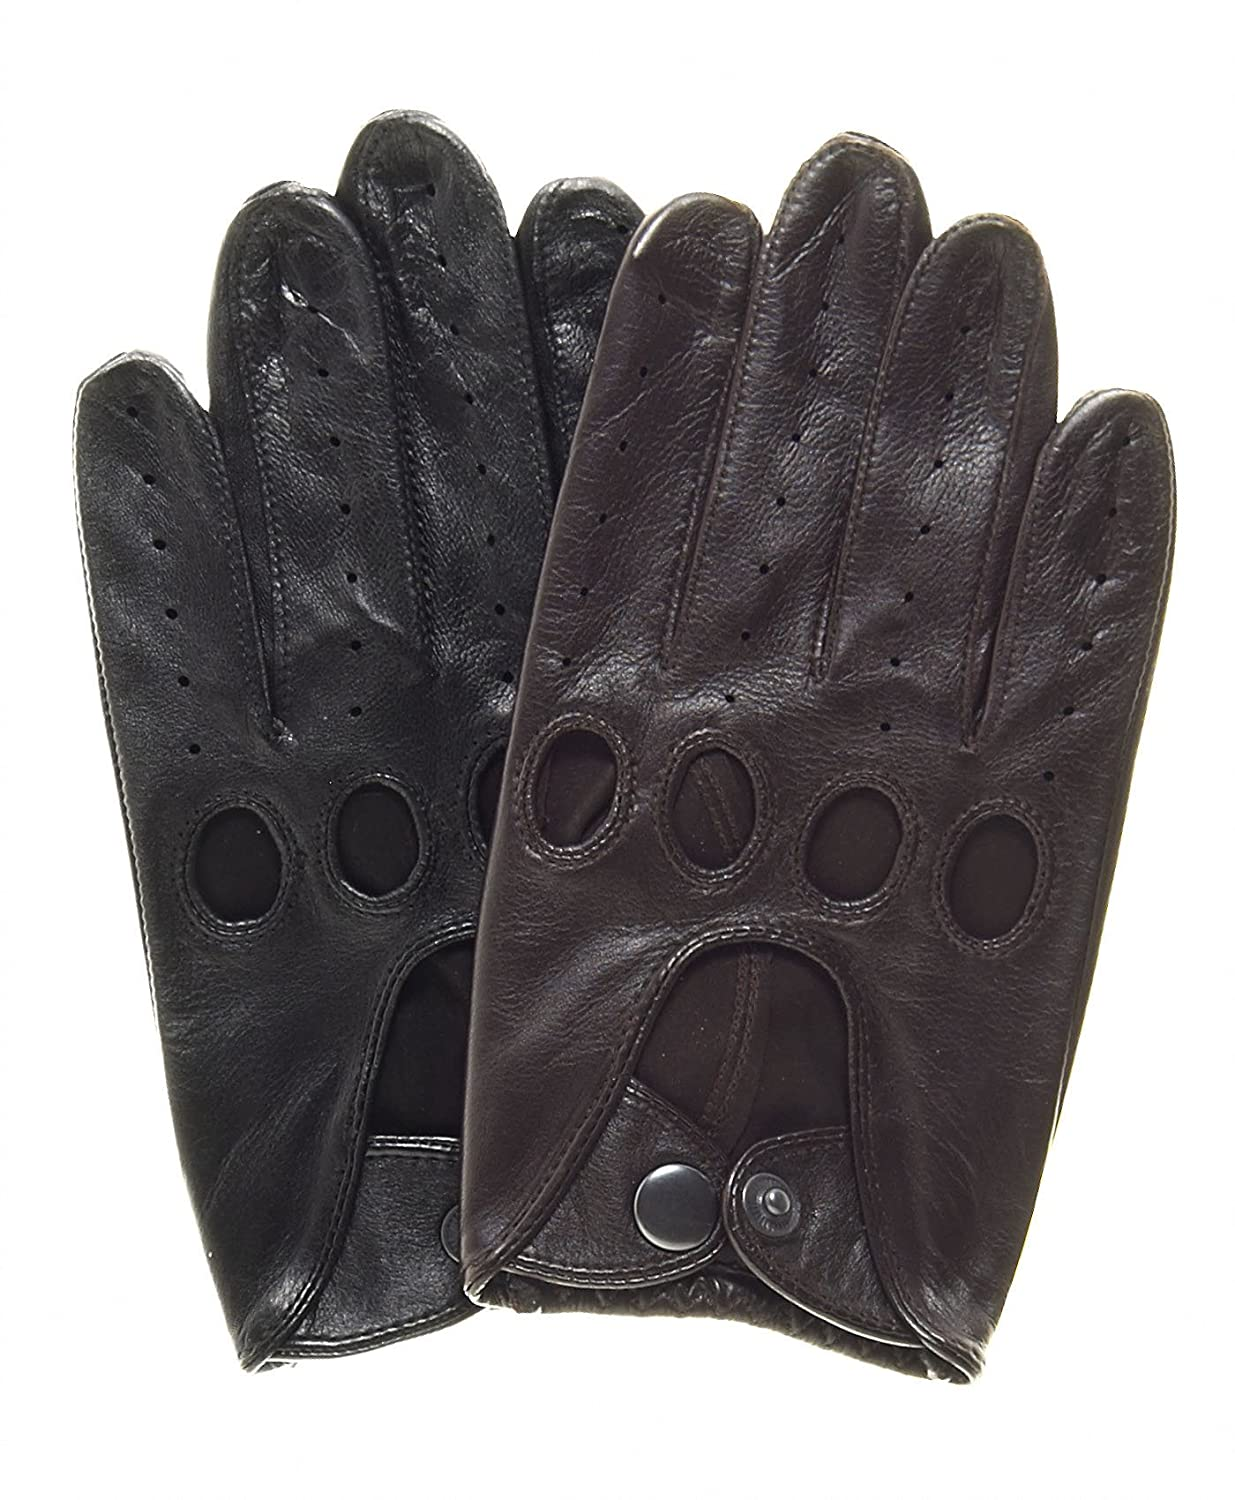 Leather gloves that work with iphone - Pratt And Hart Touchscreen Leather Driving Gloves Size S Color Black At Amazon Men S Clothing Store